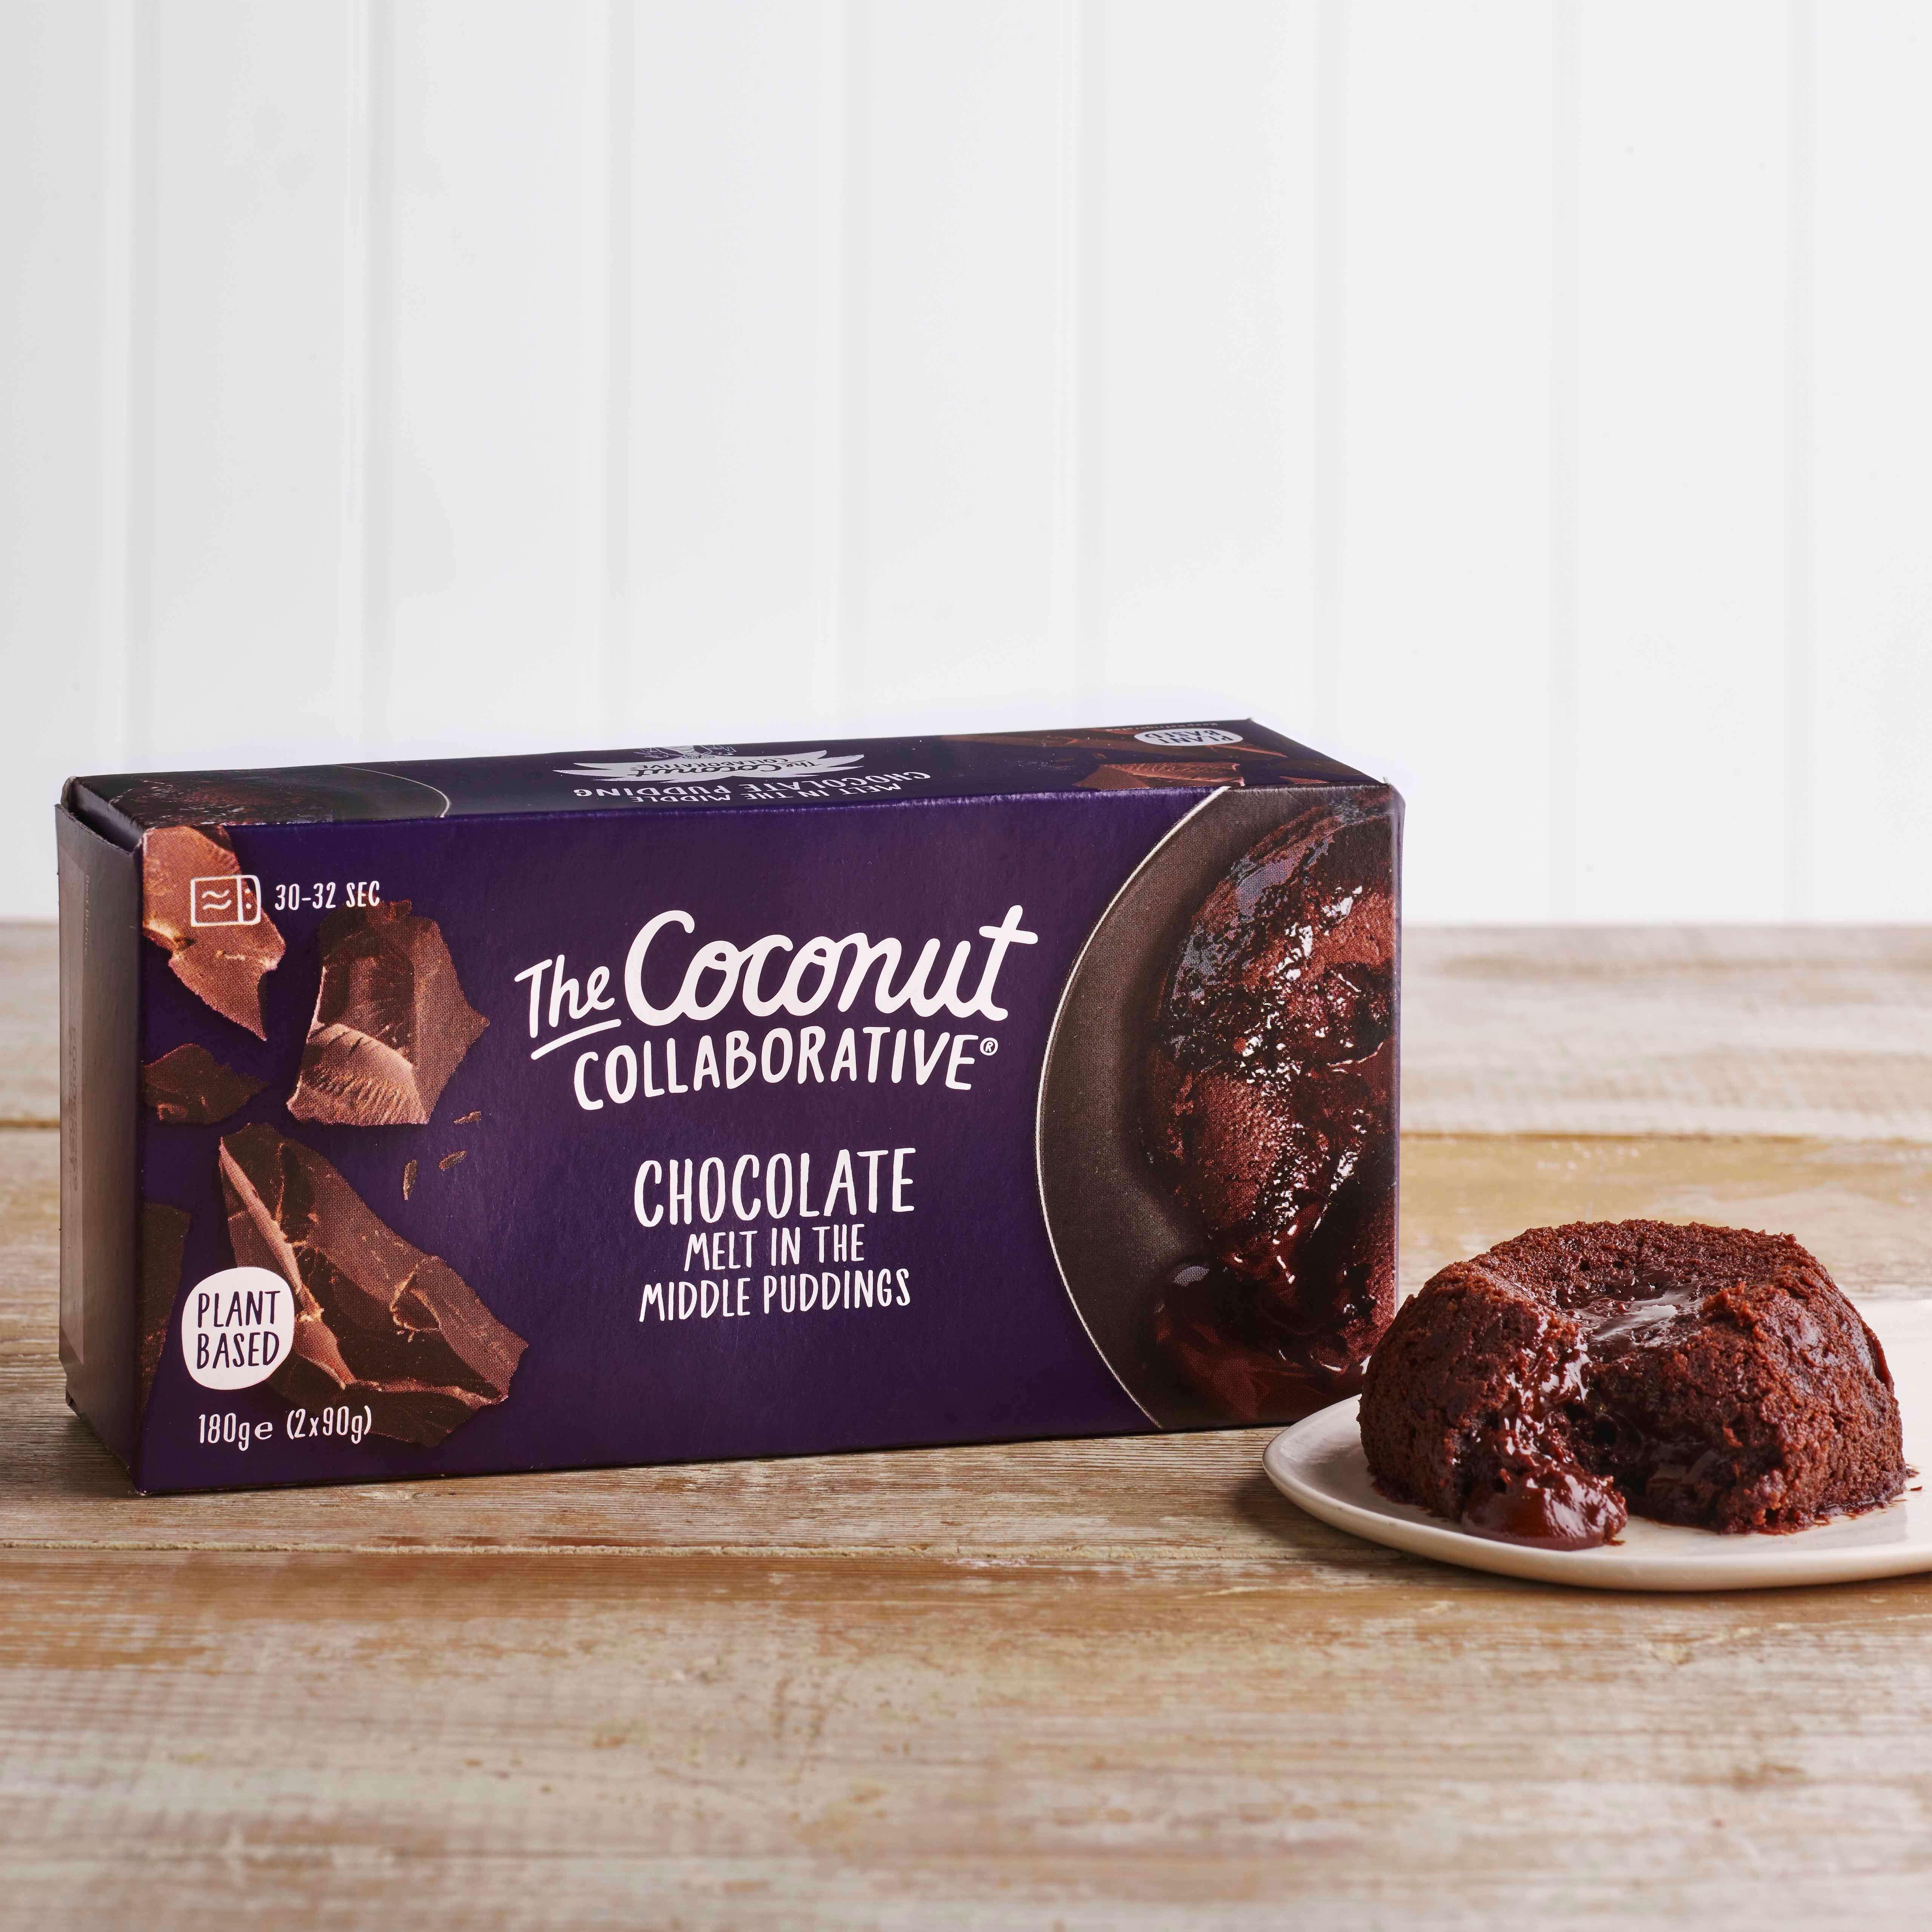 The Coconut Collaborative Chocolate Melt in the Middle Pudding, 2 x 90g